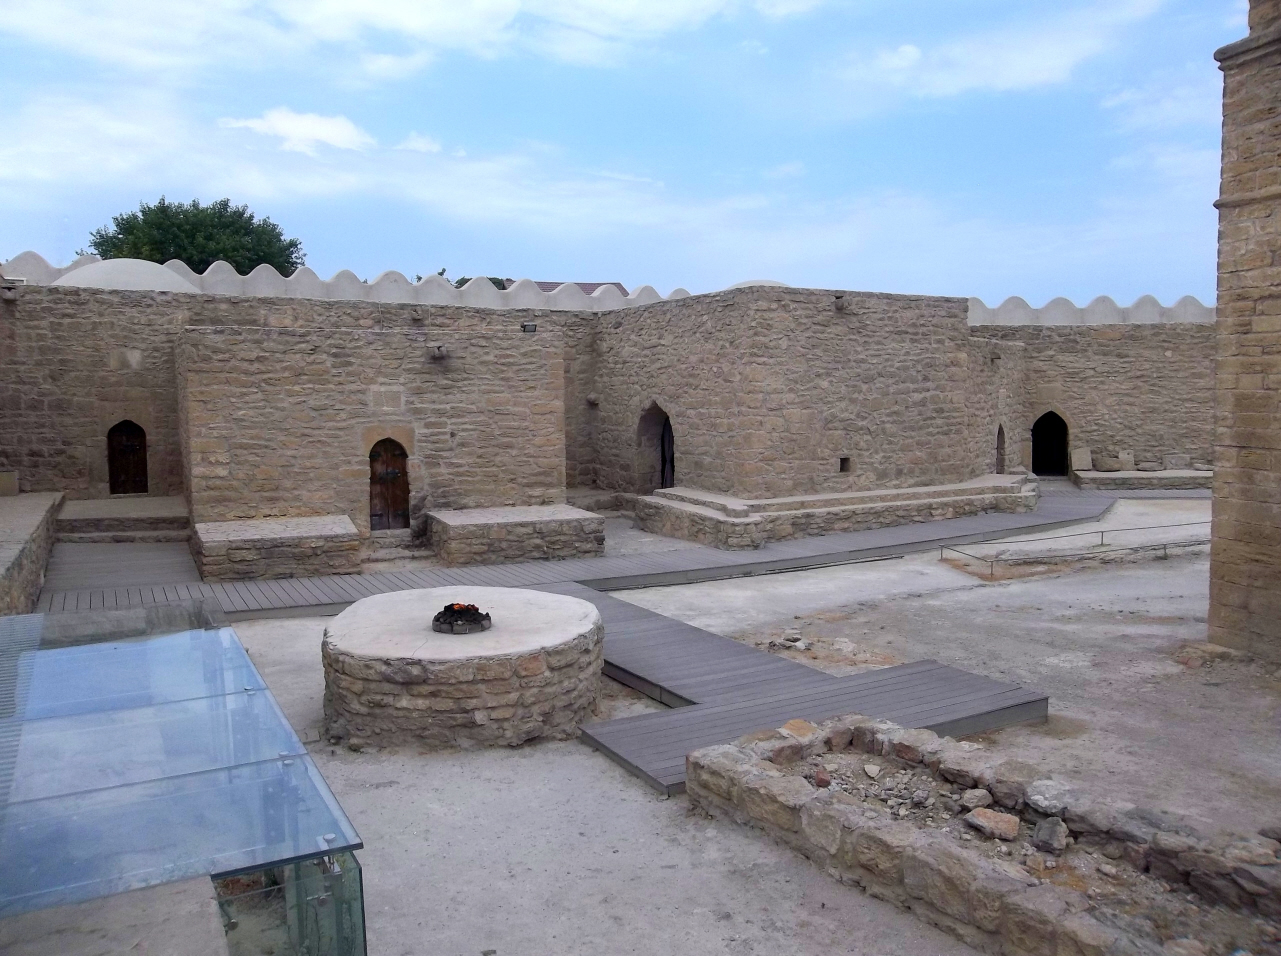 Ateshgah Fire Temple Fires Came from Natural Gas Below the Ground - Zoroasrian (7th-10th Cen)  (Hindu 18th Cen.) - Azerbaijan